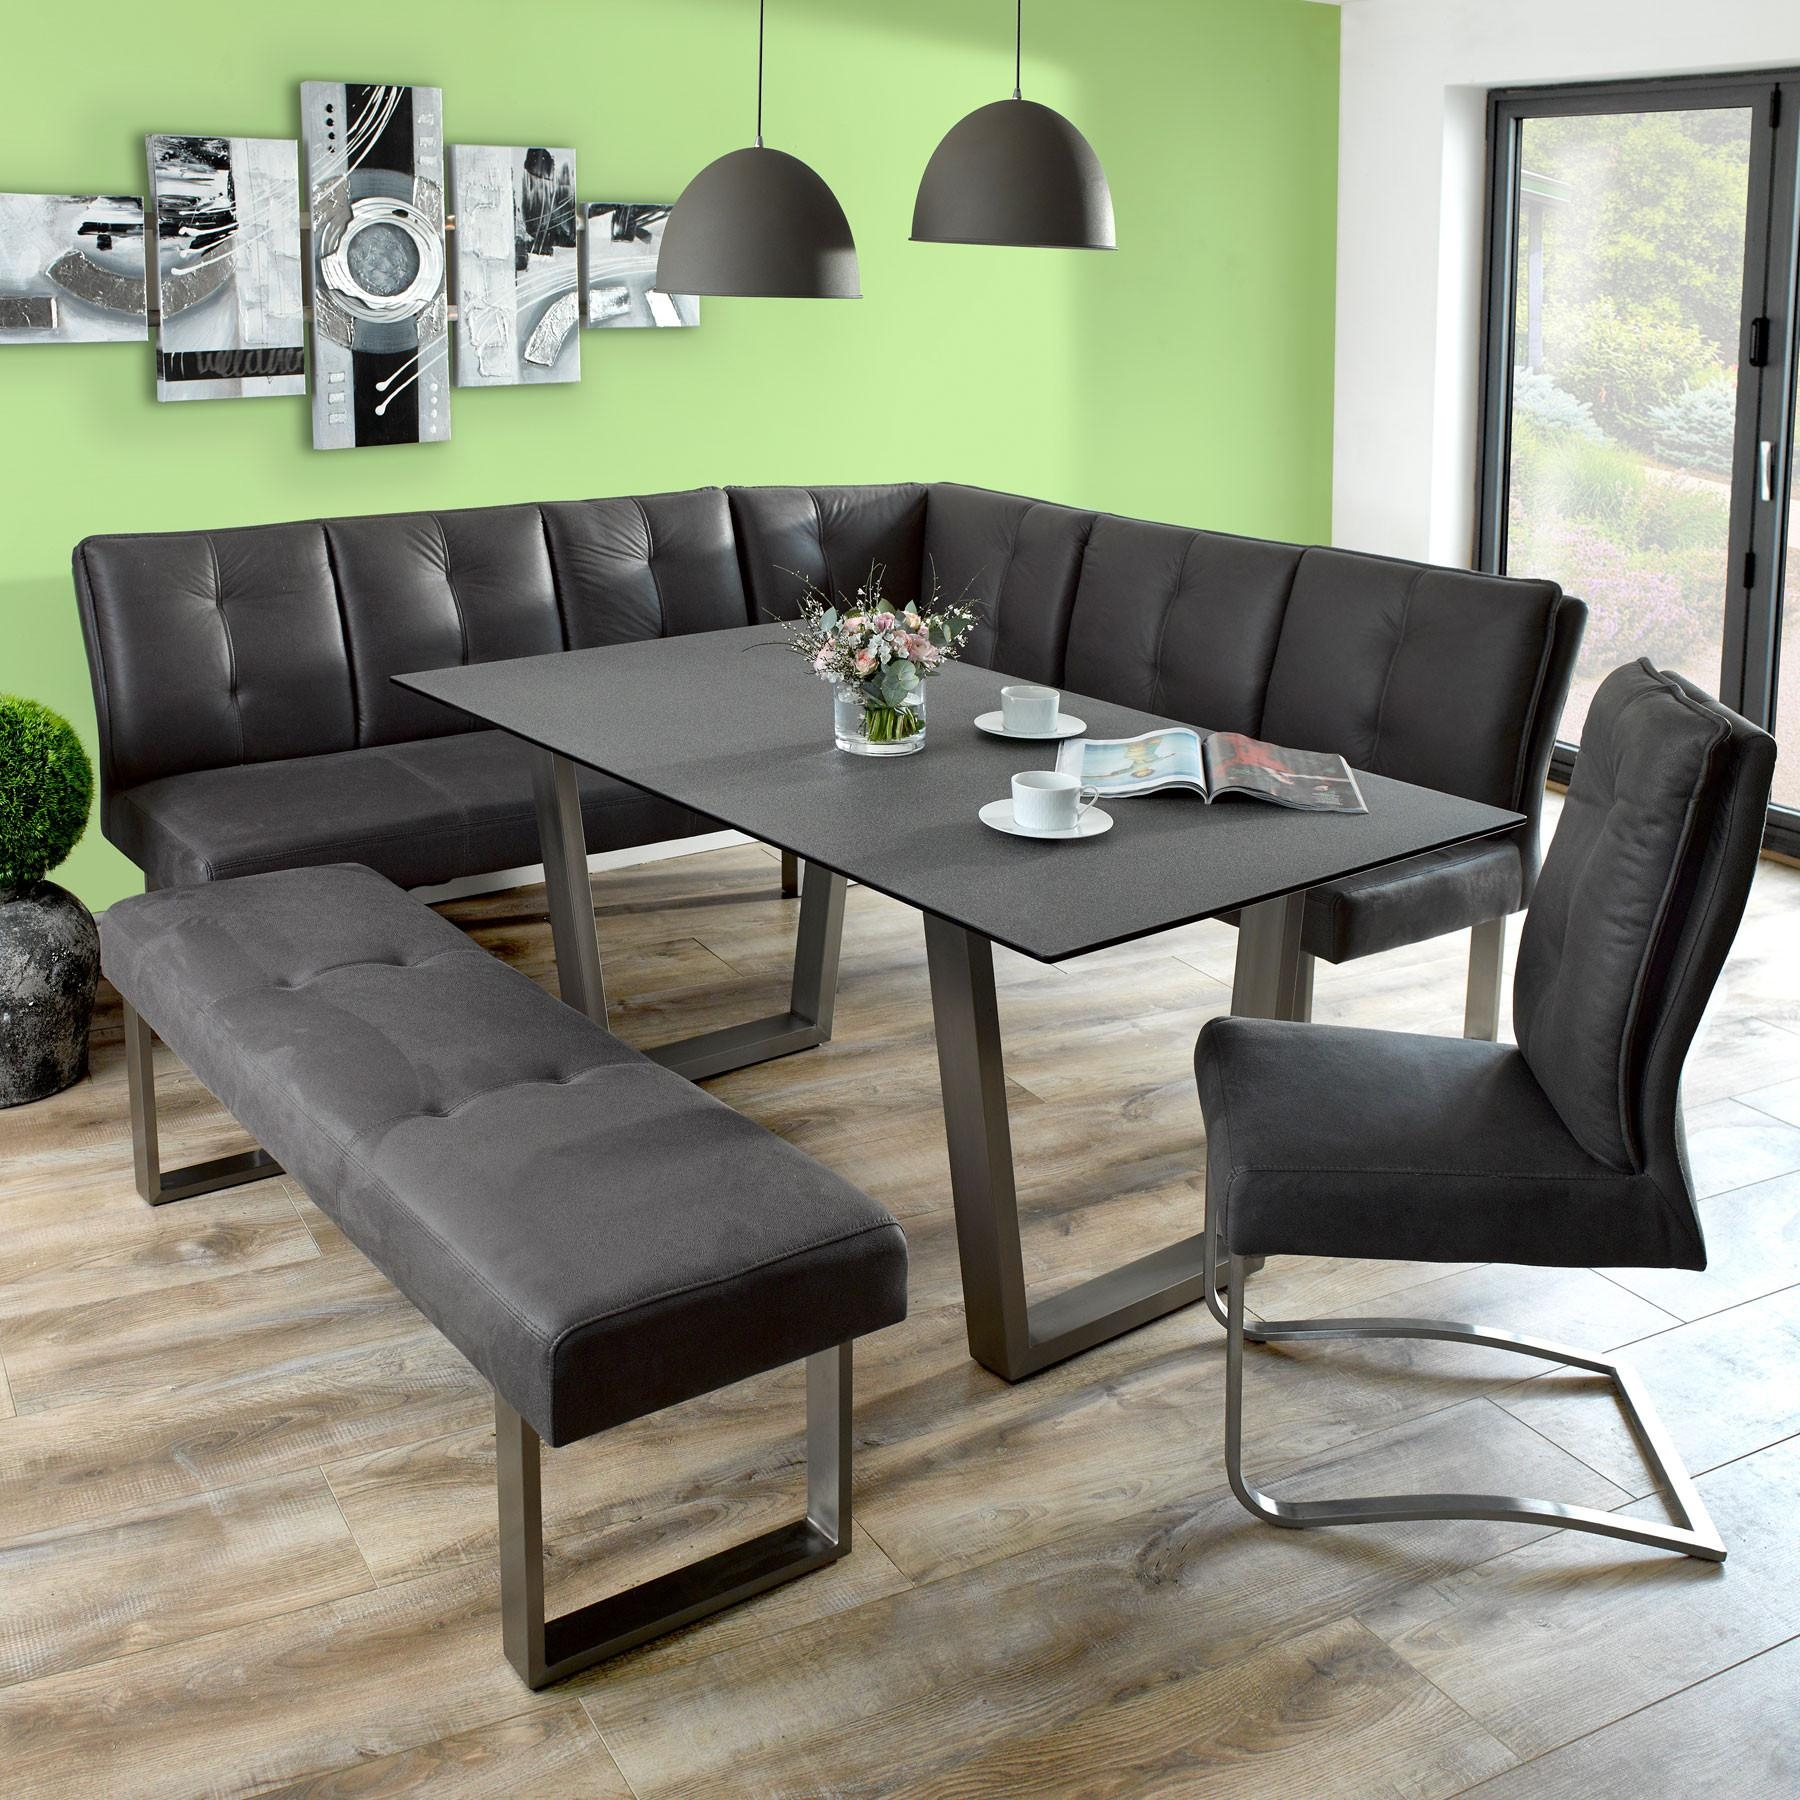 Dining Tables : Sectional Sofas For Small Spaces Small Kitchen For Dining Room Bench Sofas (Image 13 of 20)